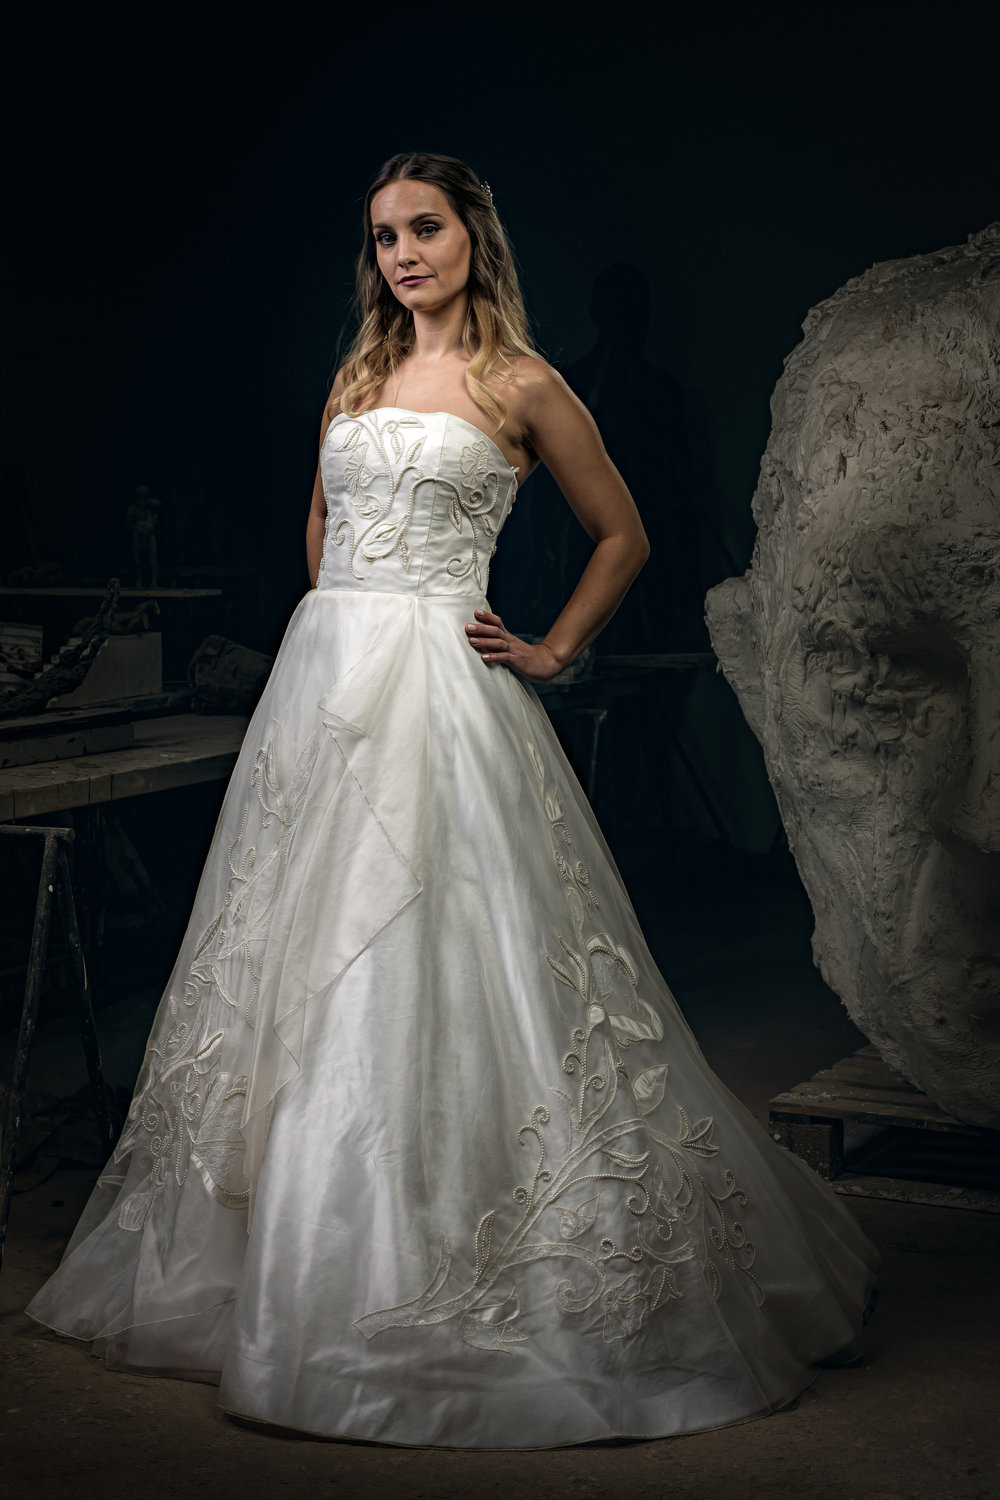 Martin Dobson Couture - Bespoke wedding dress - Suffolk - 0468 - September 17, 2017 - copyright Foyers Photography-Edit--® Robert Foyers - All Rights Reserved-3163 x 4744.JPG